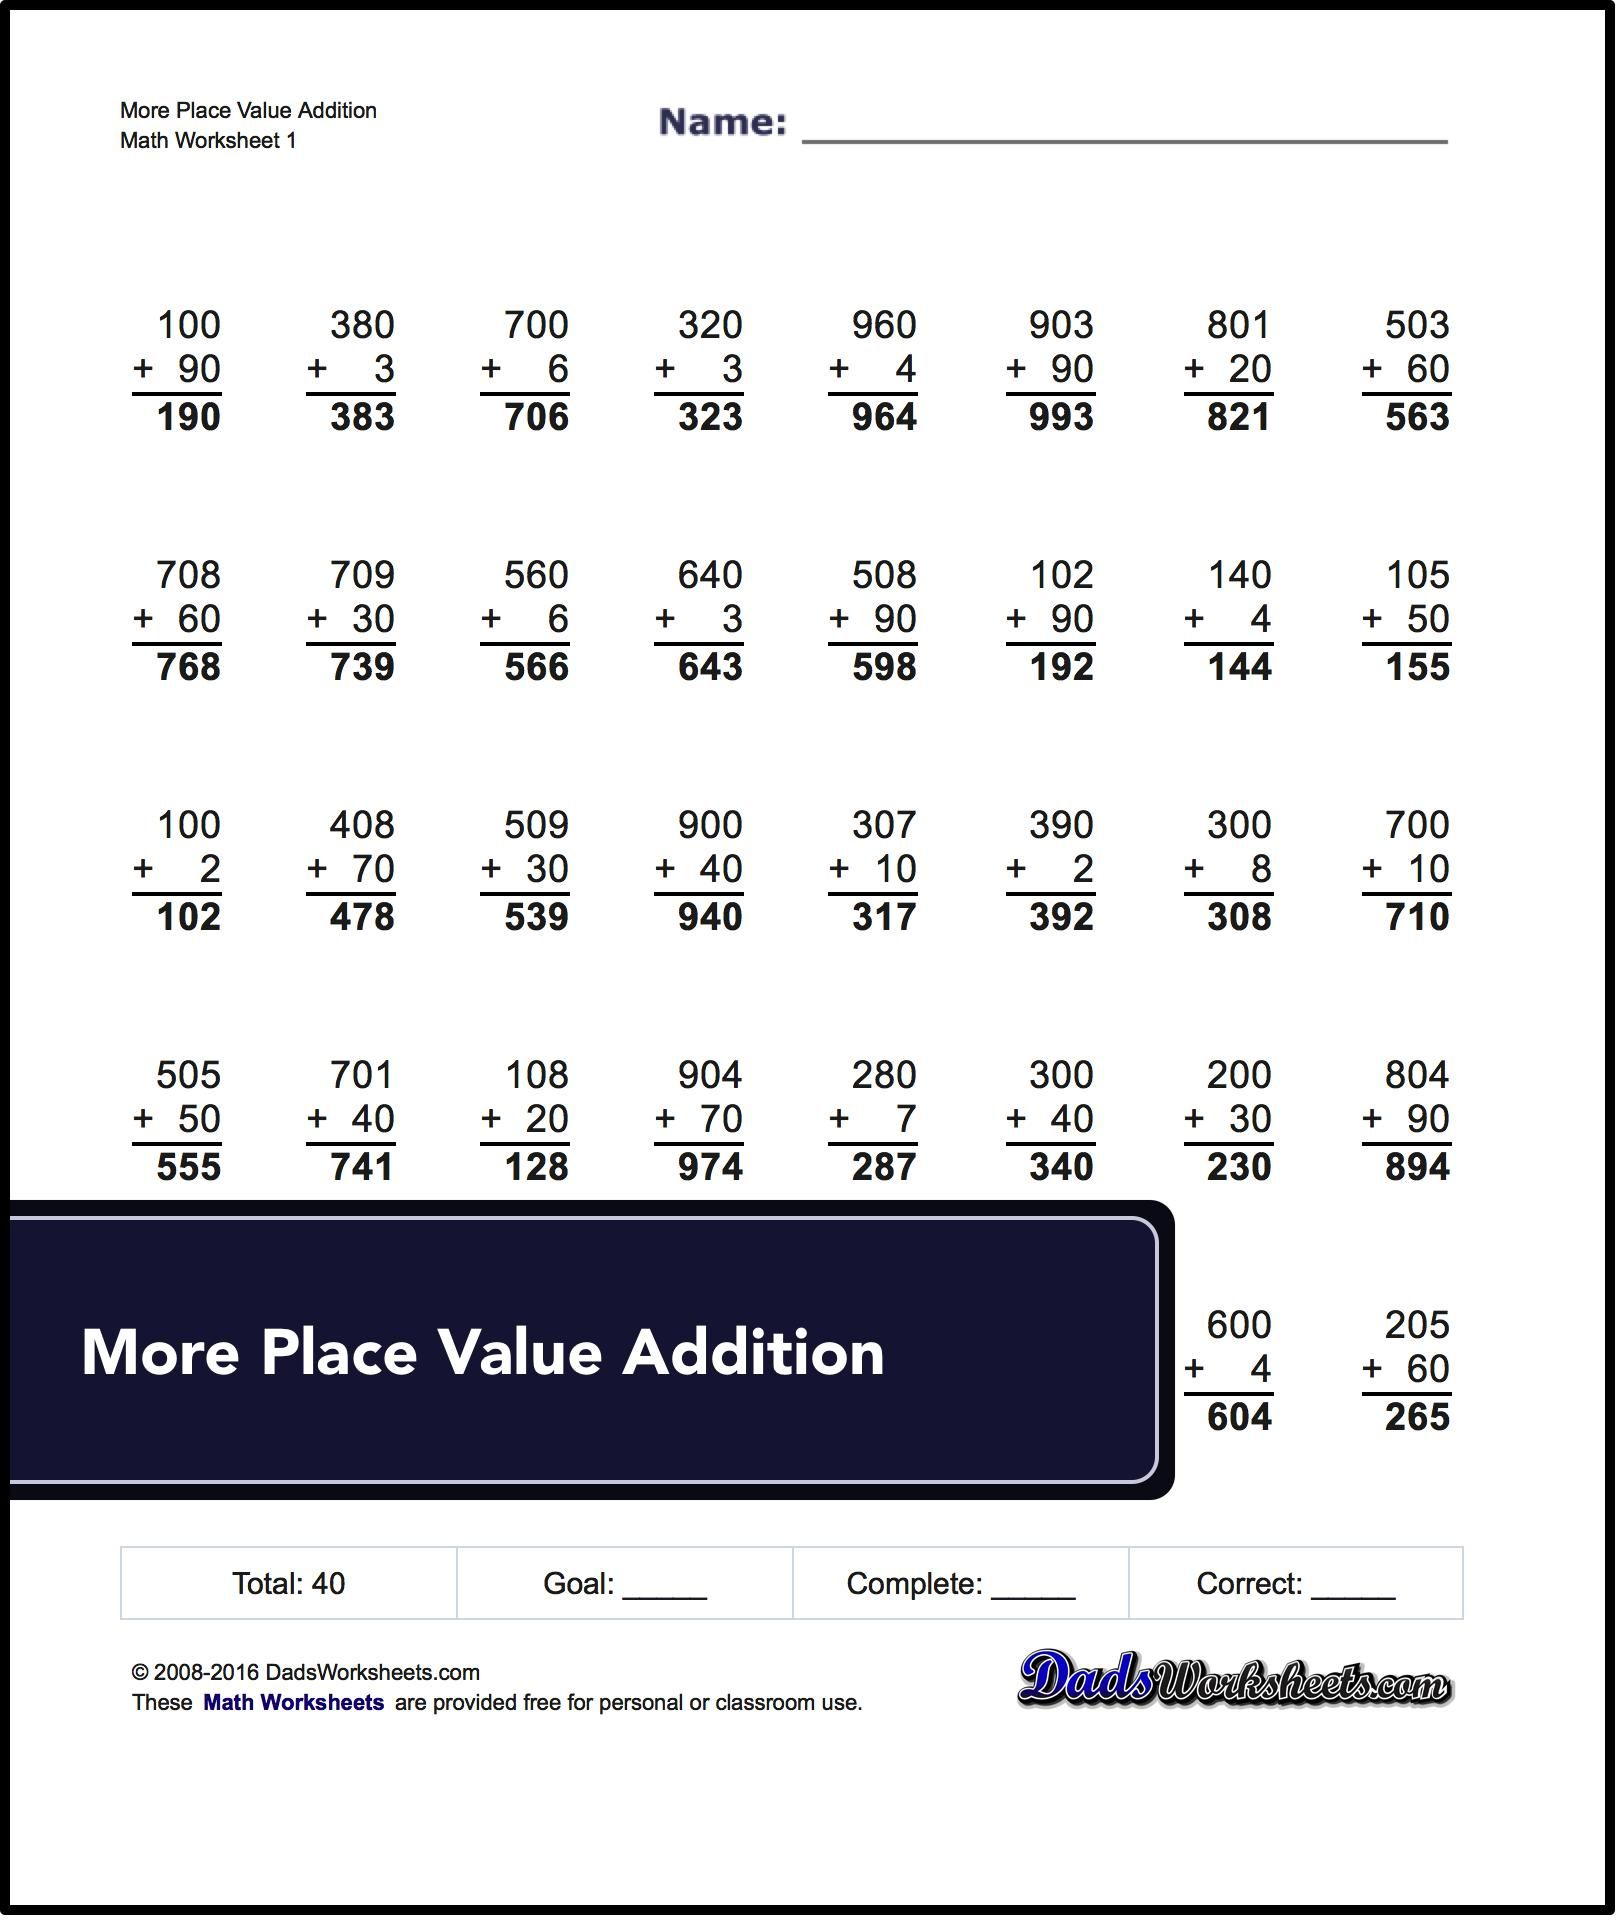 These Place Value Addition Sheets Are Good First Steps